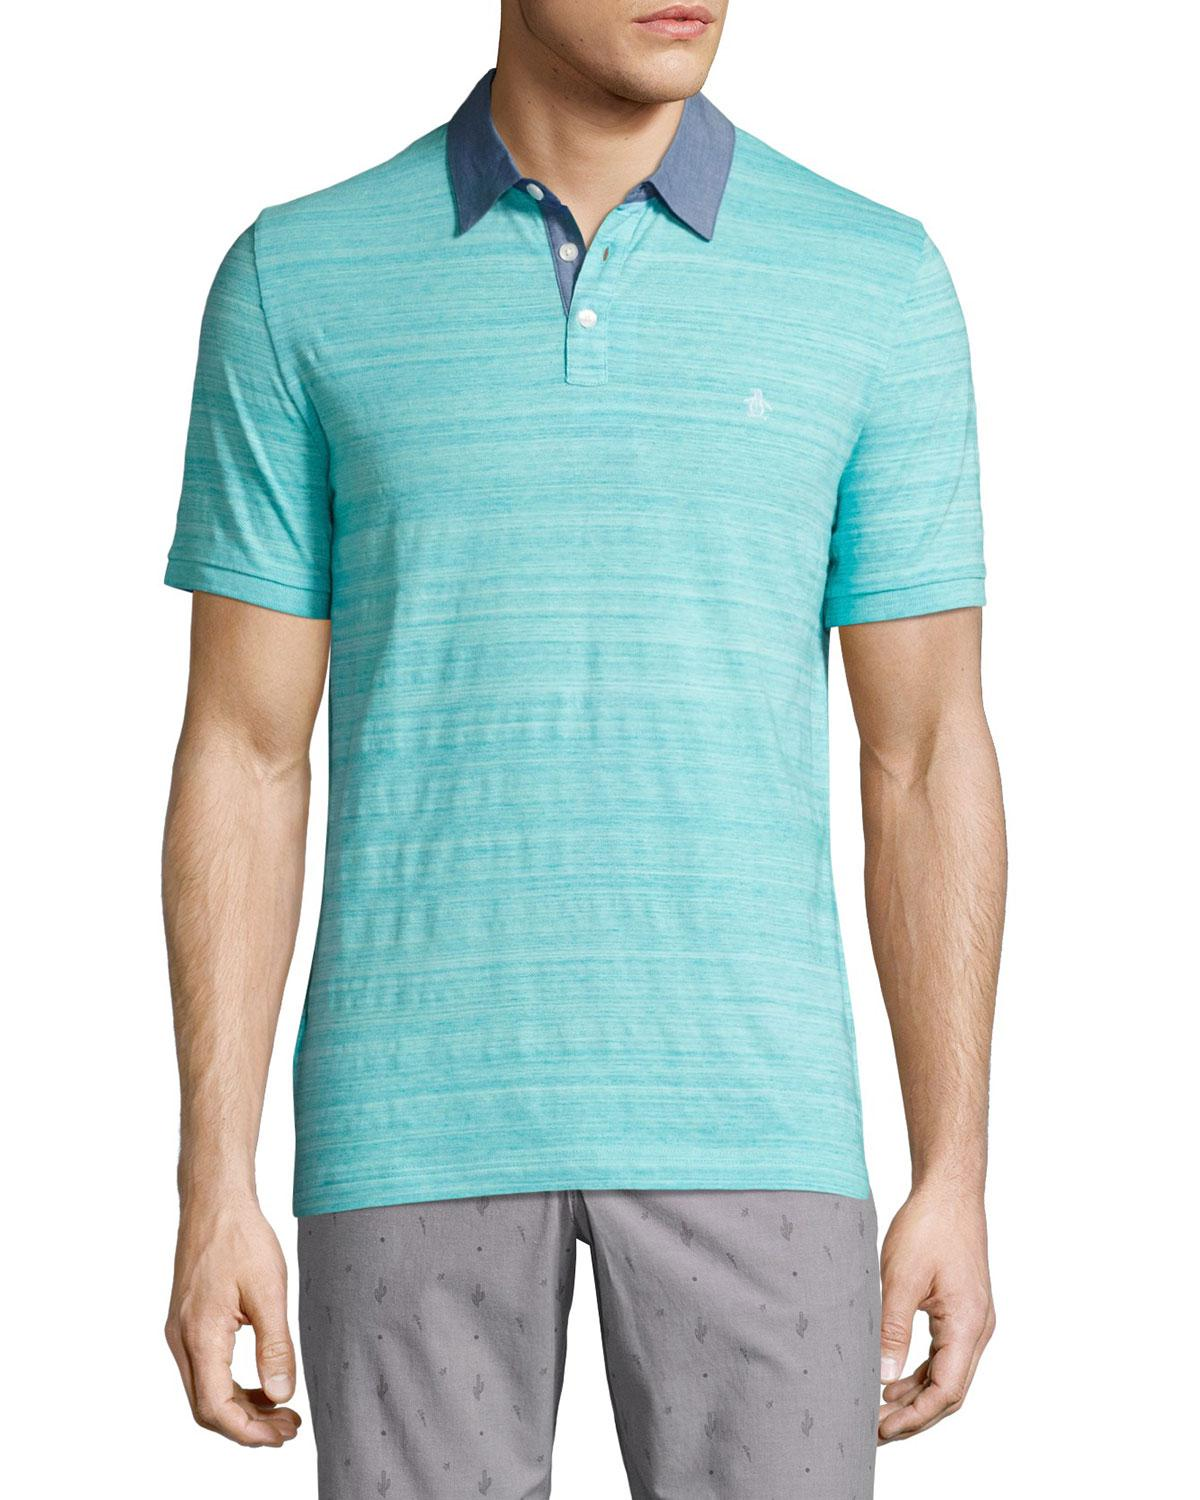 Lyst - Original Penguin Space Dye Jersey Polo Shirt in Blue for Men 87af5d8dc5759